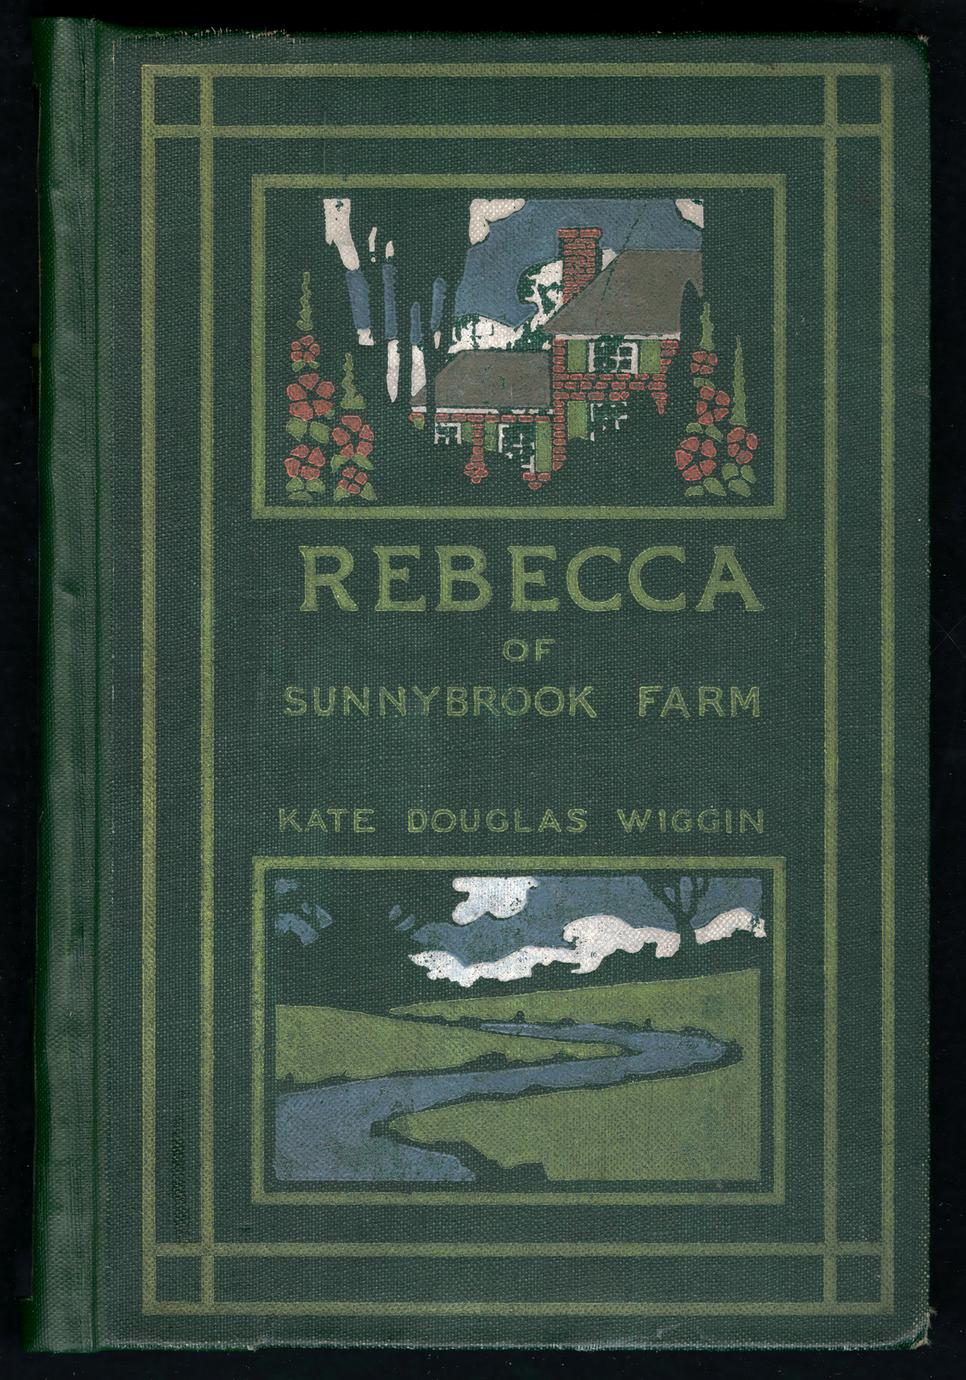 Rebecca of Sunnybrook farm (1 of 3)